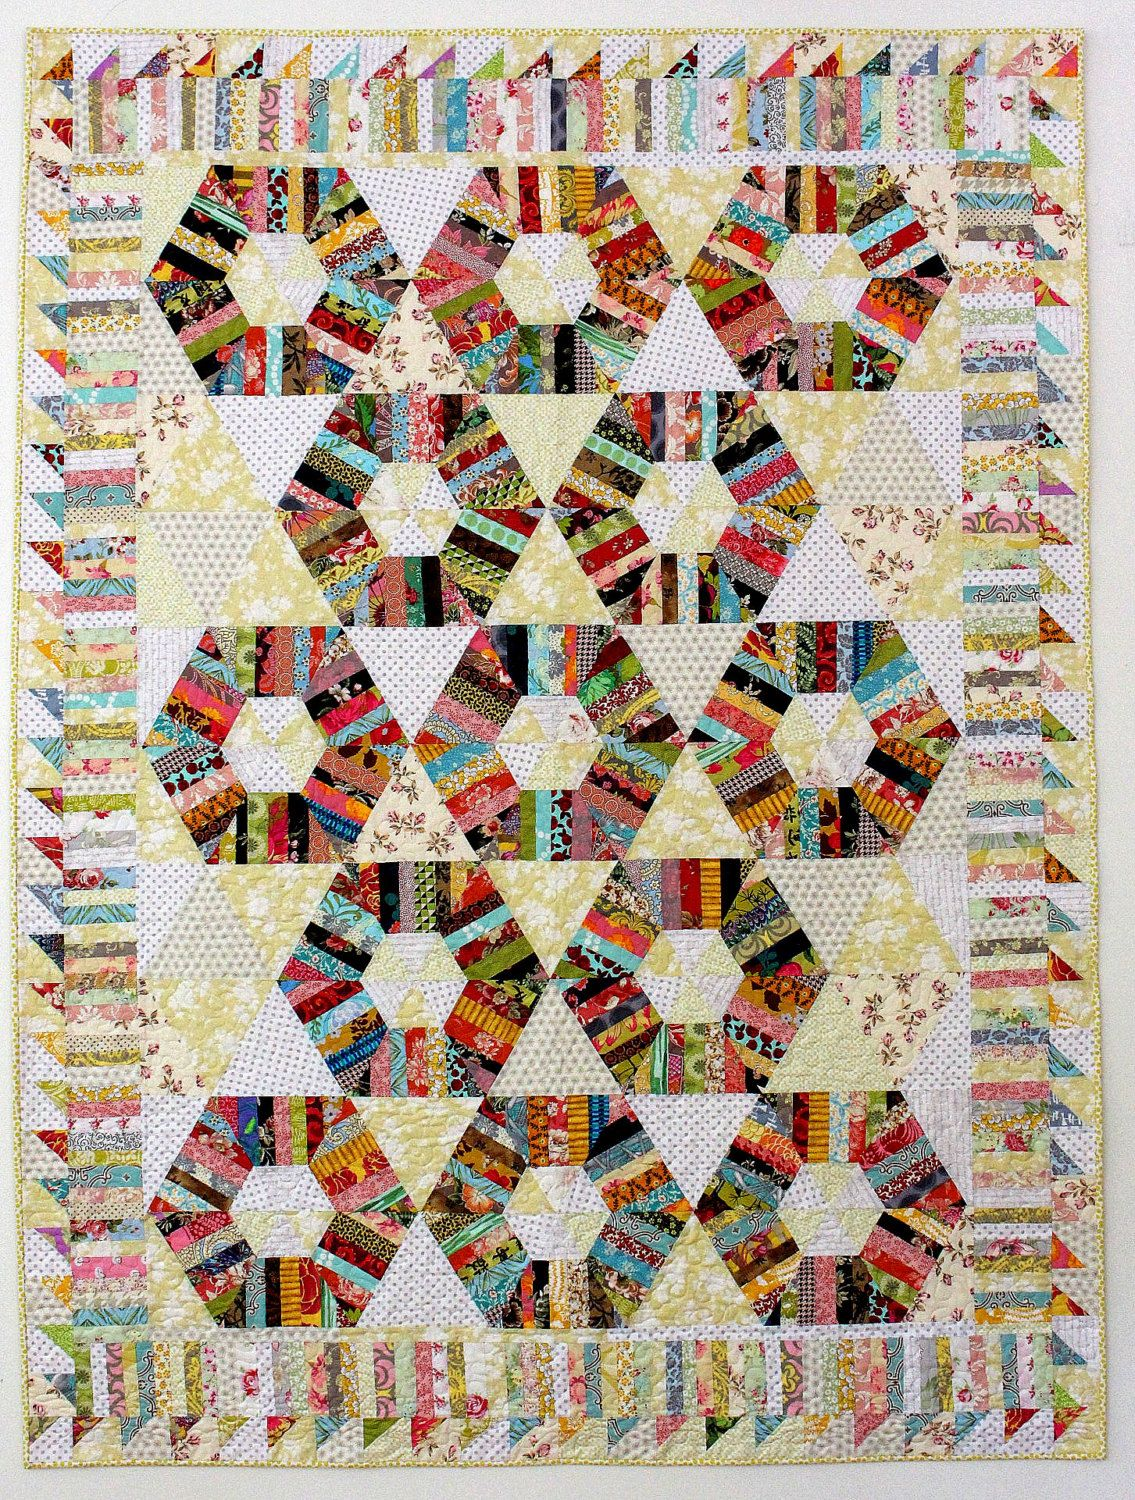 Honeycomb Quilt Pattern String quilt pattern by KarenGriskaQuilts ... : string quilts patterns - Adamdwight.com